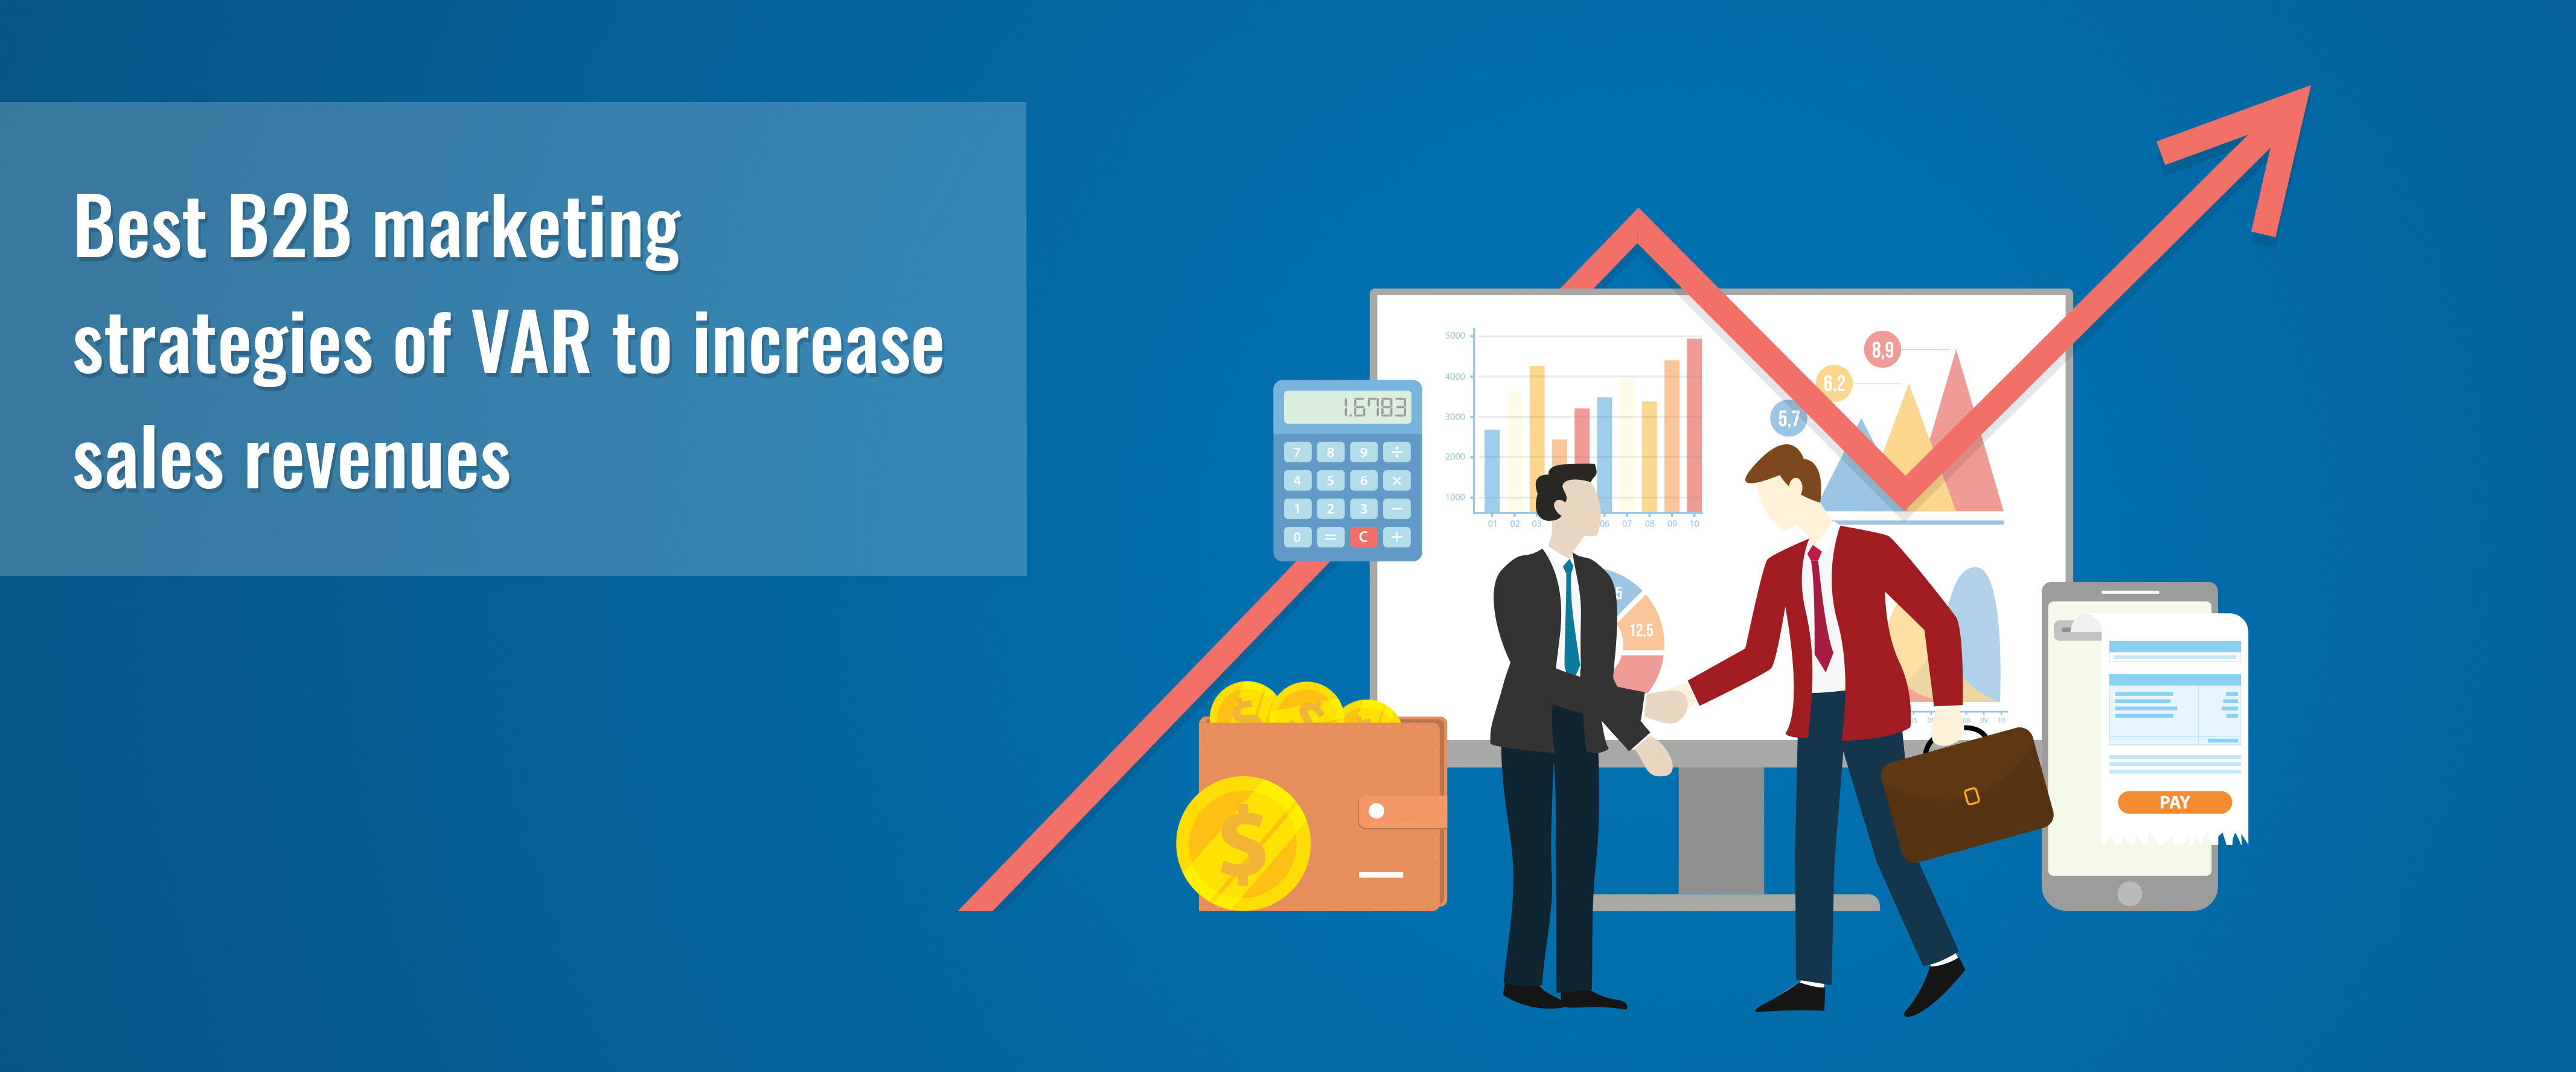 Best B2B Marketing Strategies for VARs to Increase Sales Revenues